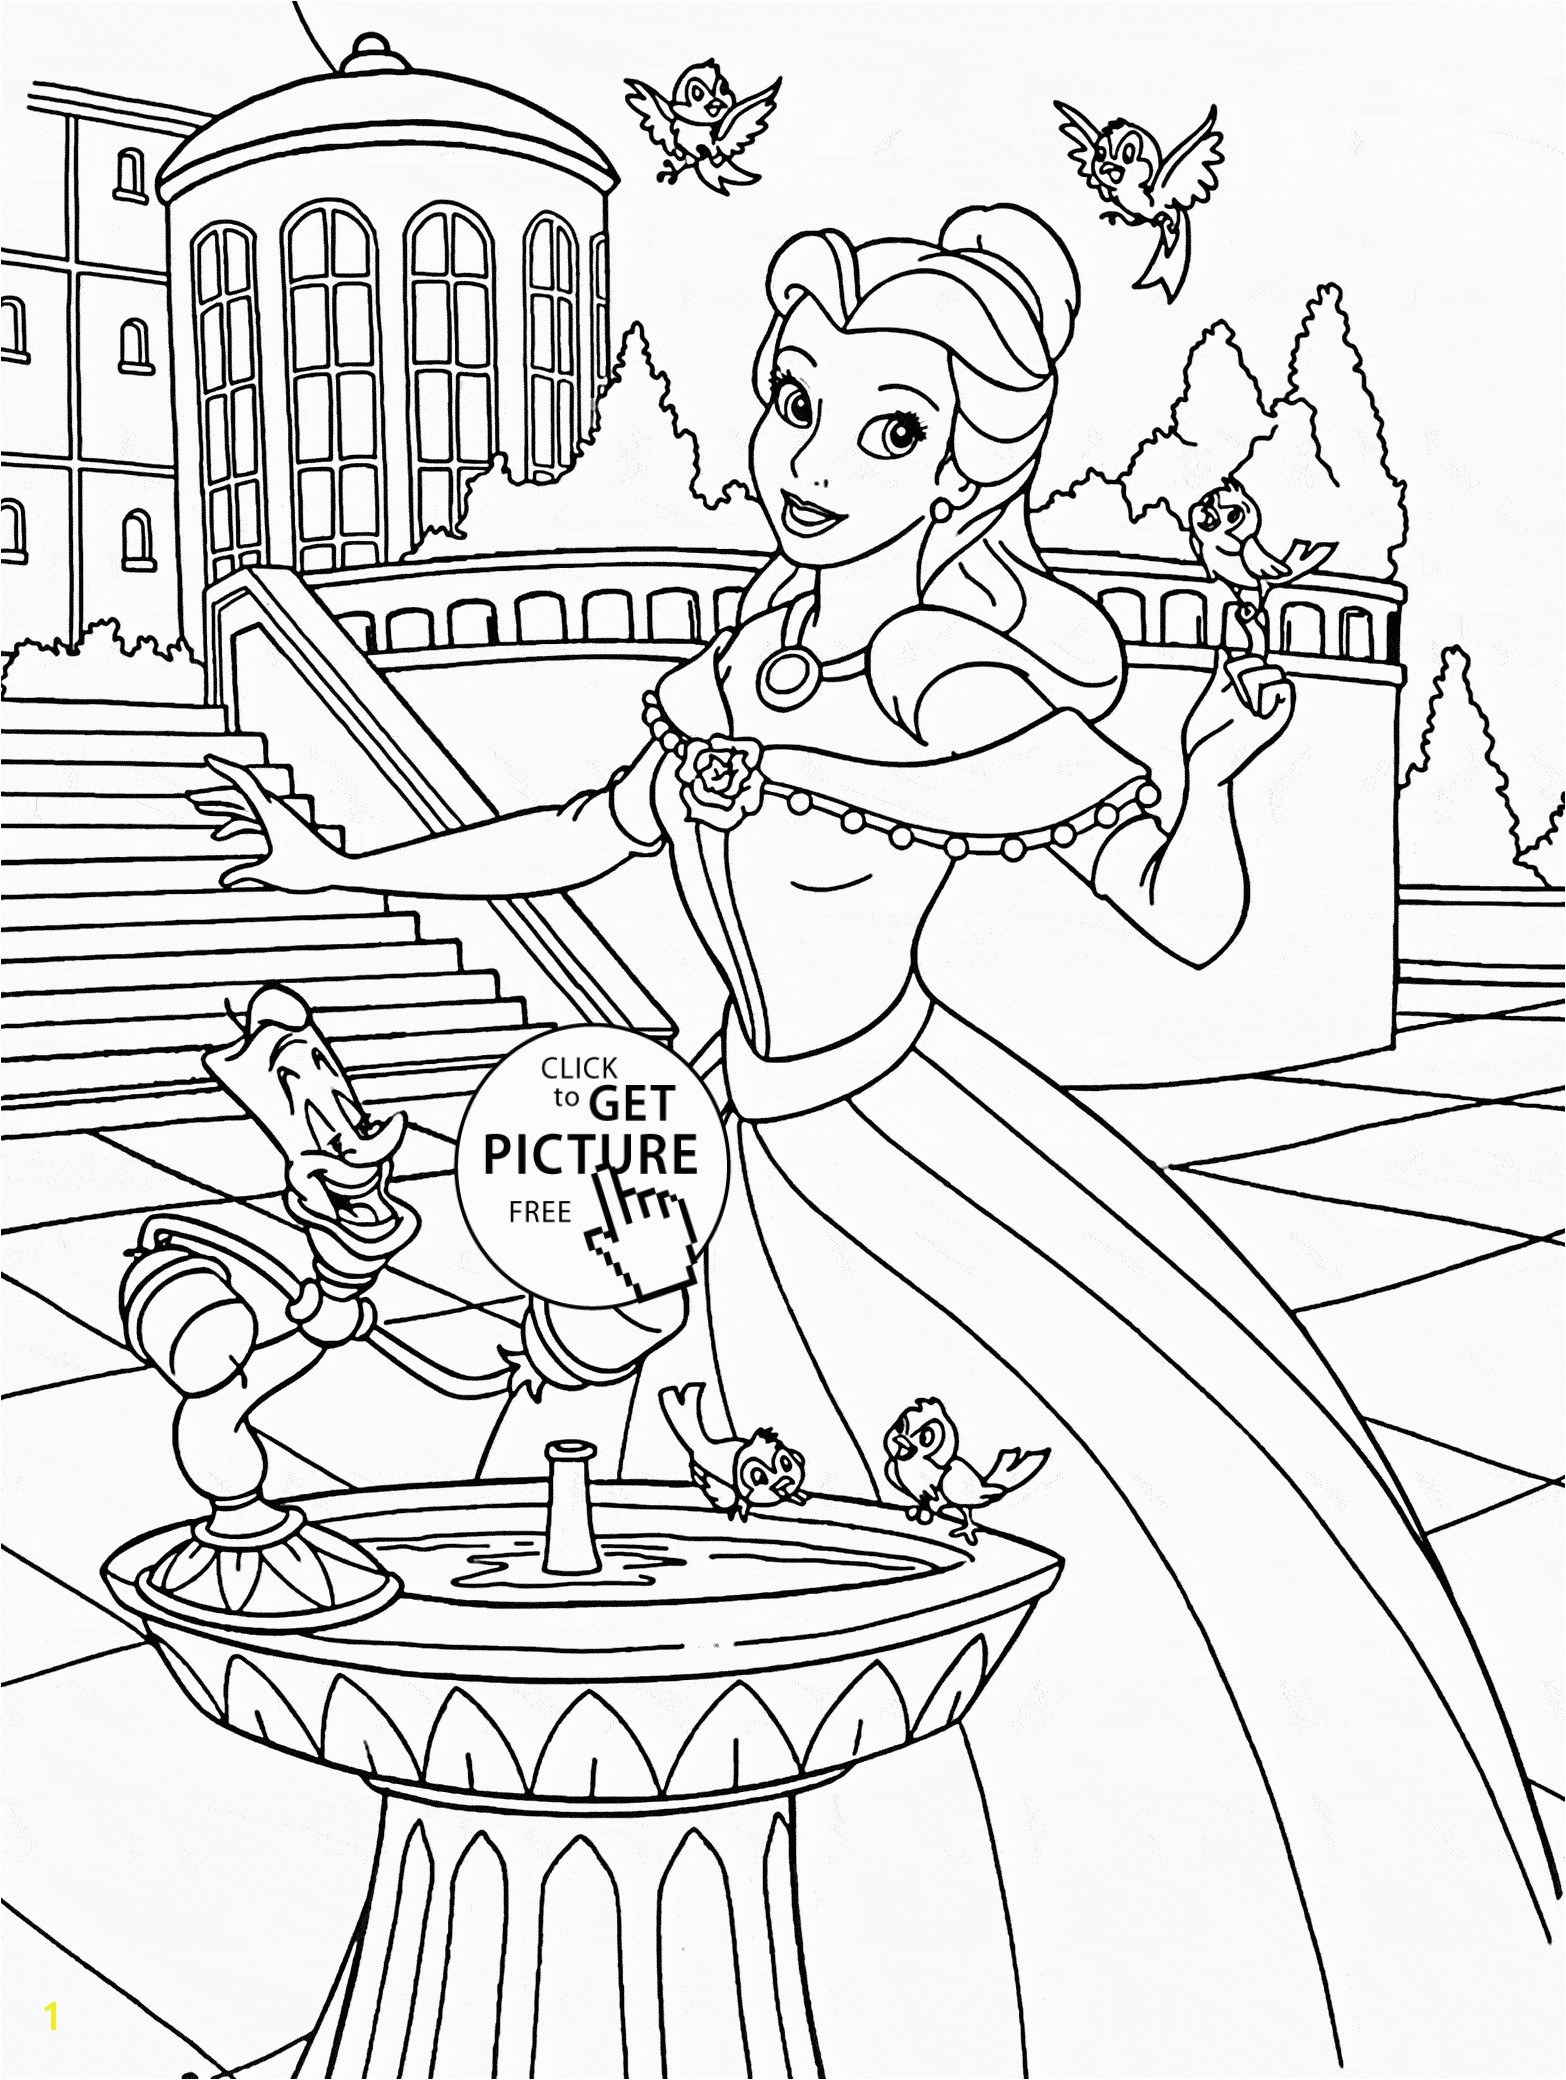 Princess Crown Coloring Pages to Print Coloring Pages Crown Crown Coloring Page Crown Template 0d